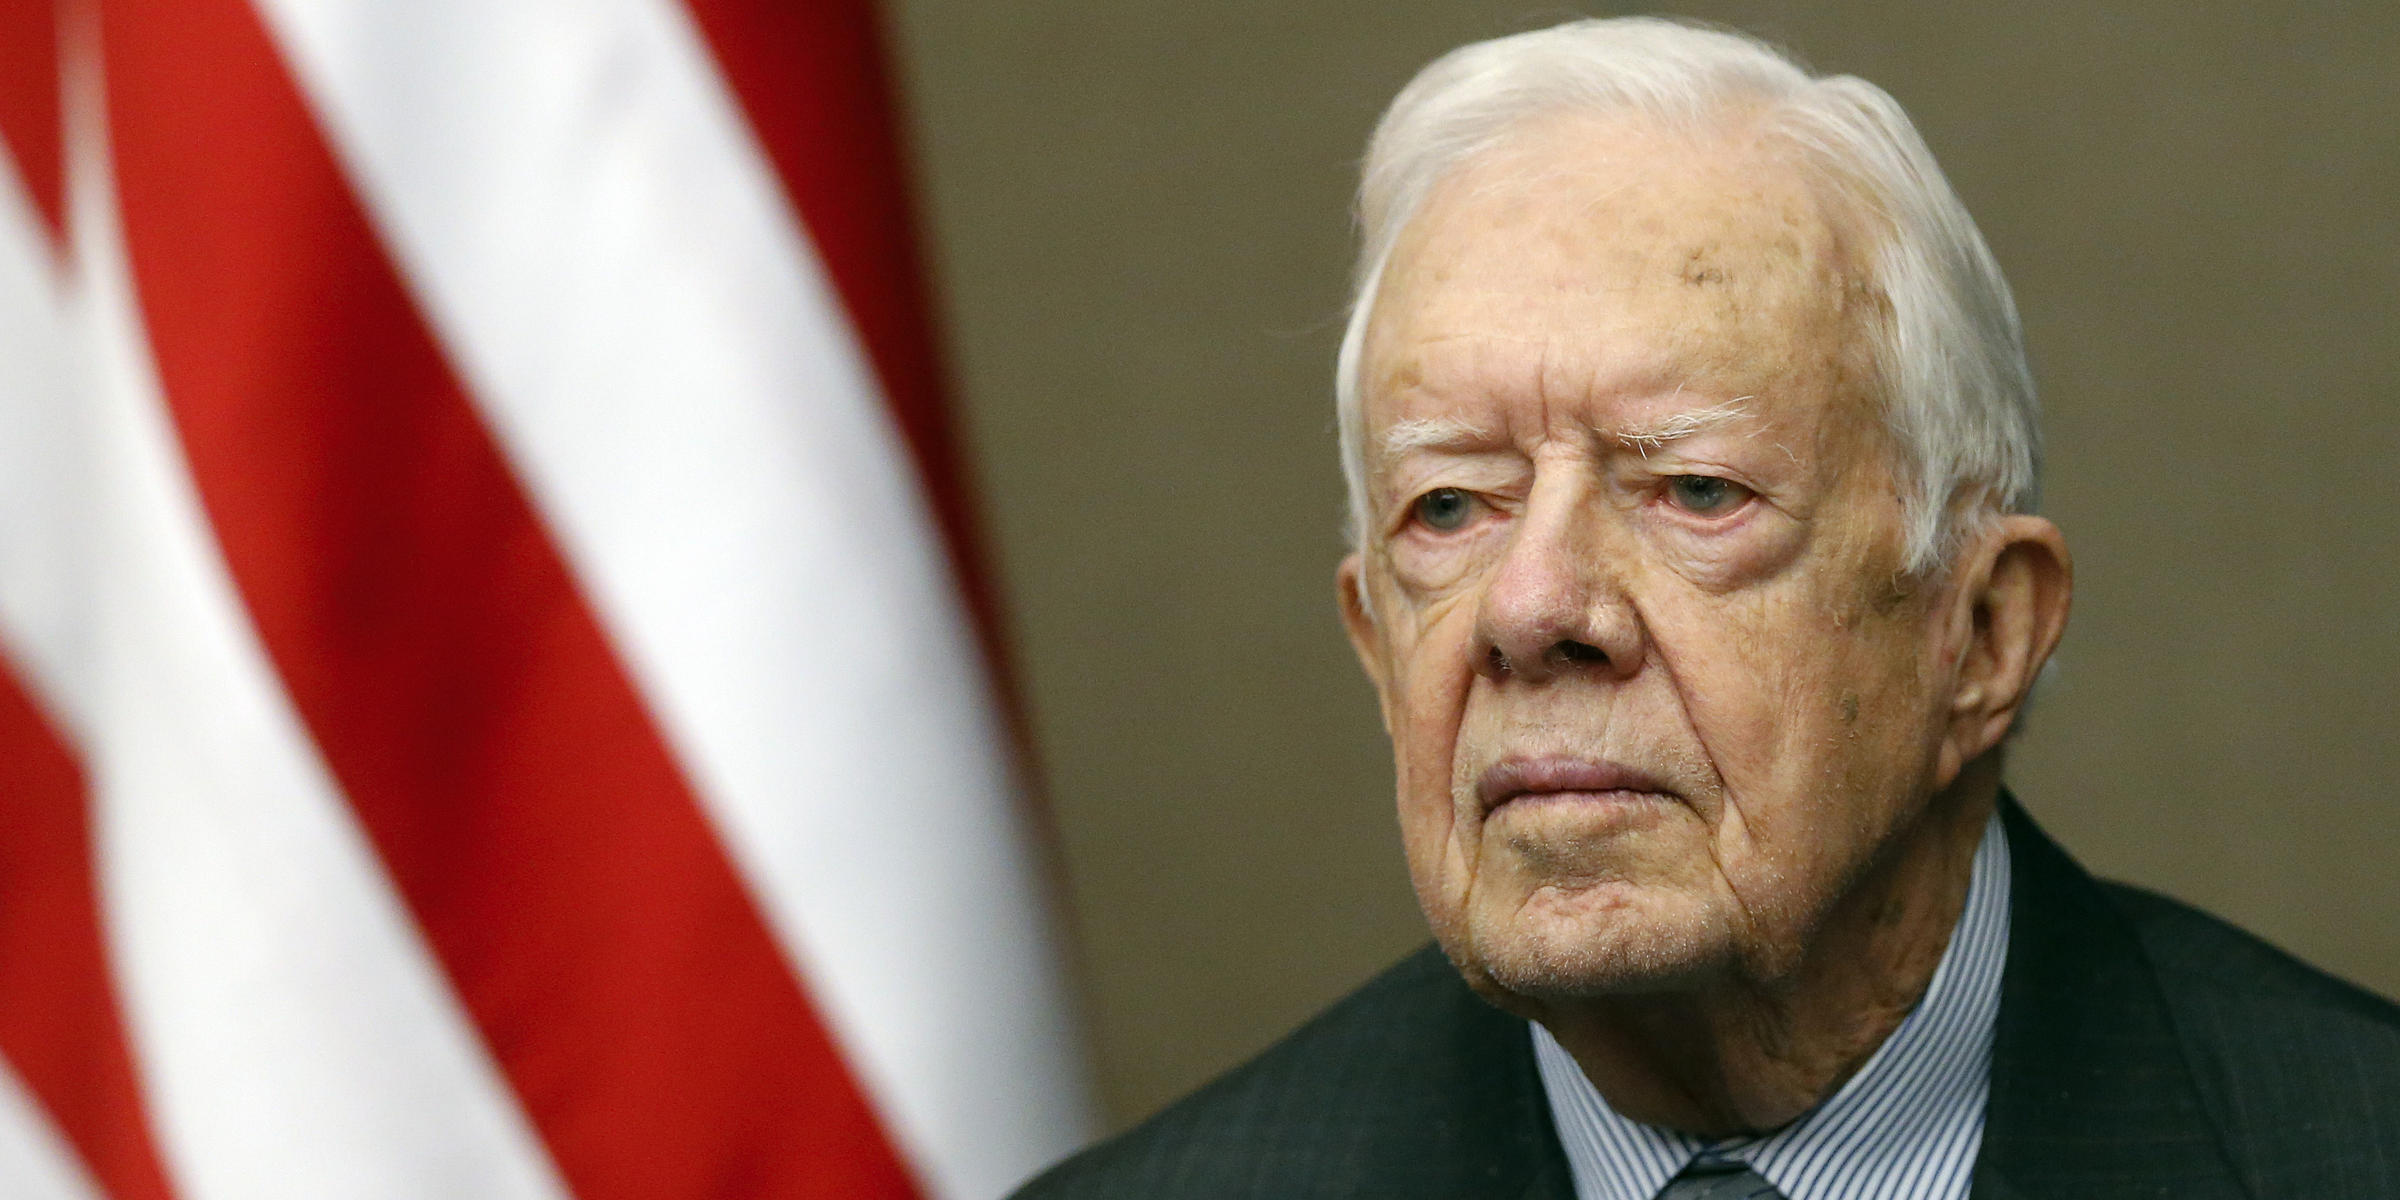 Jimmy Carter to Trump: 'Keep the peace' and 'tell the truth'